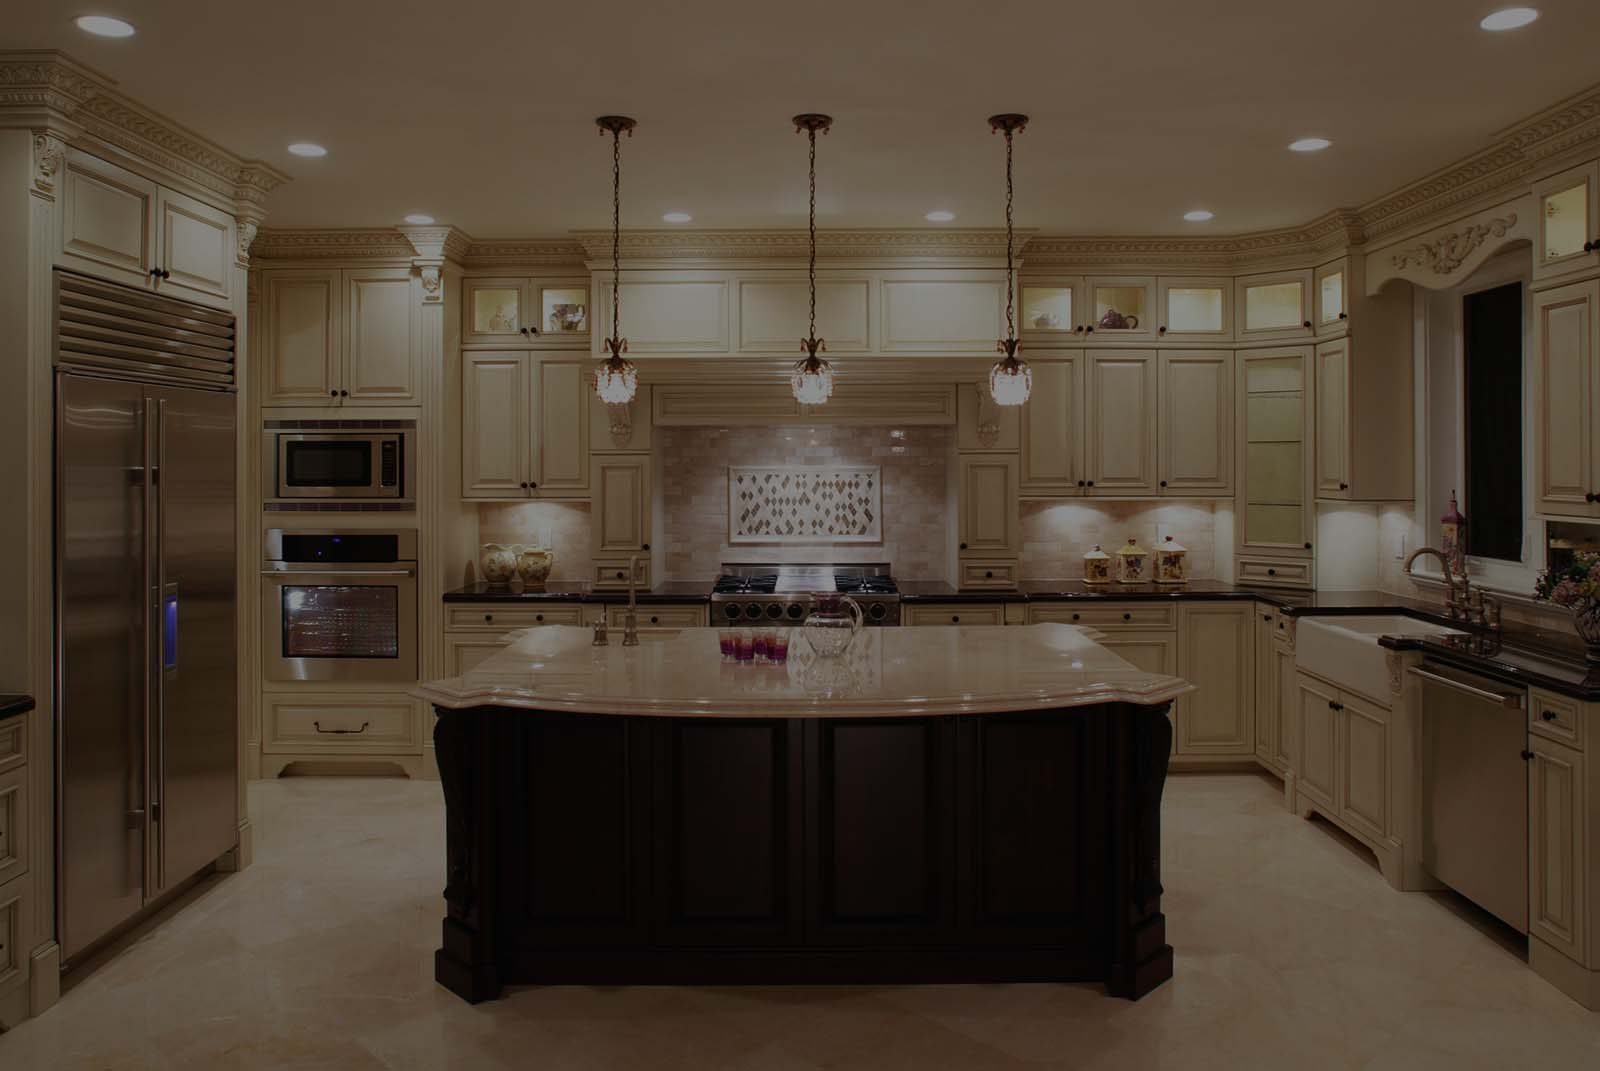 Interior of a beautiful custom kitchen